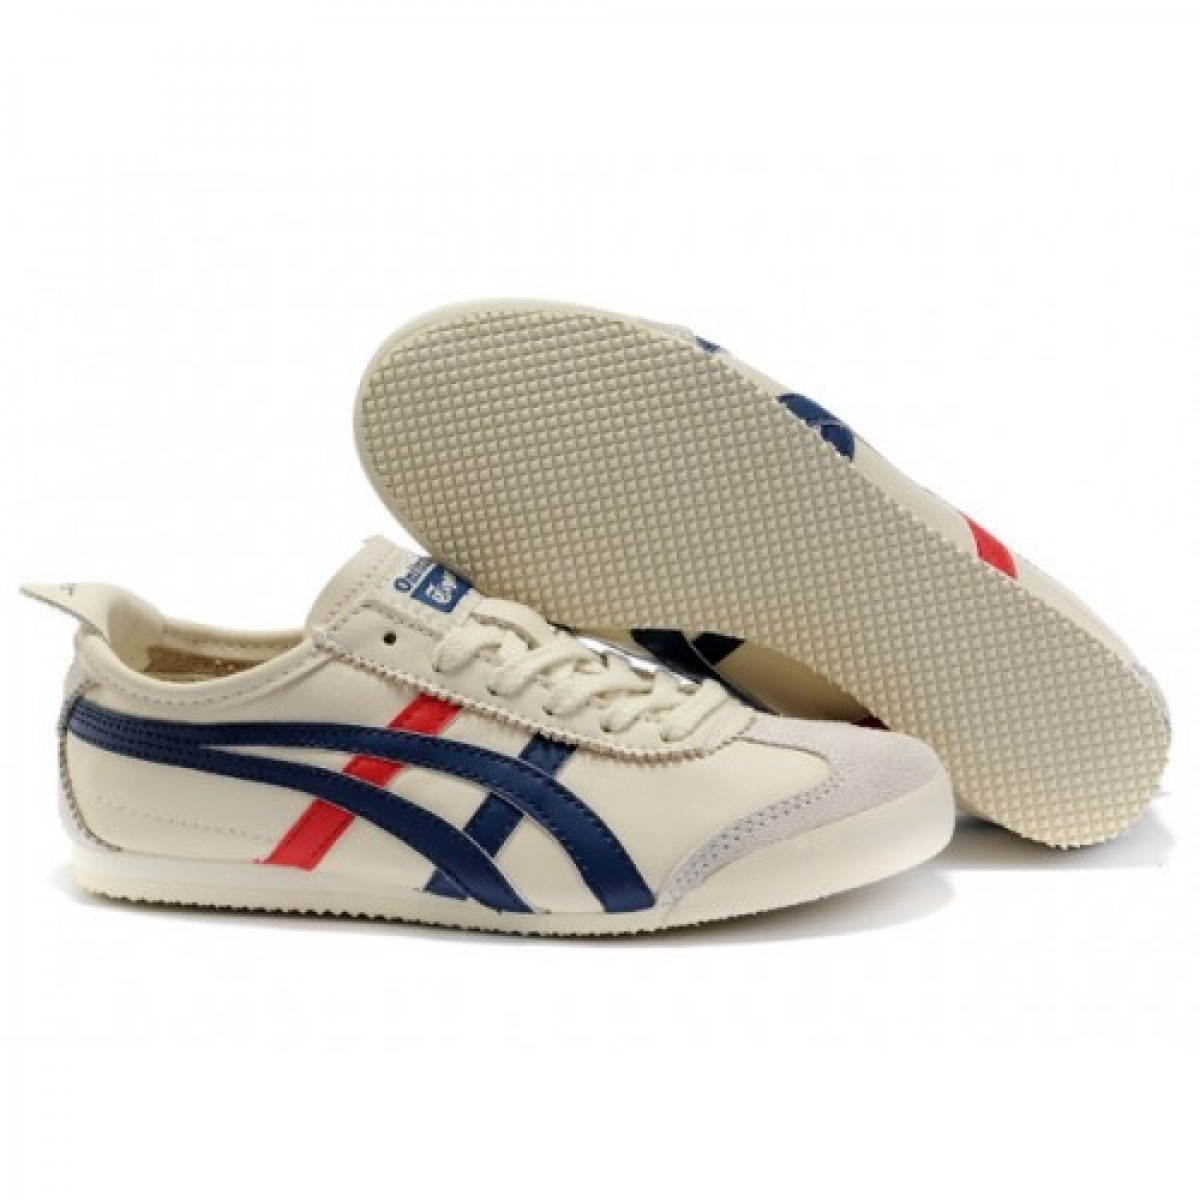 FG5085 Chaussures Soldes Asics Onitsuka Tiger Mexico 66 Femmes Beige Bleu Rouge 41710849 Pas Cher